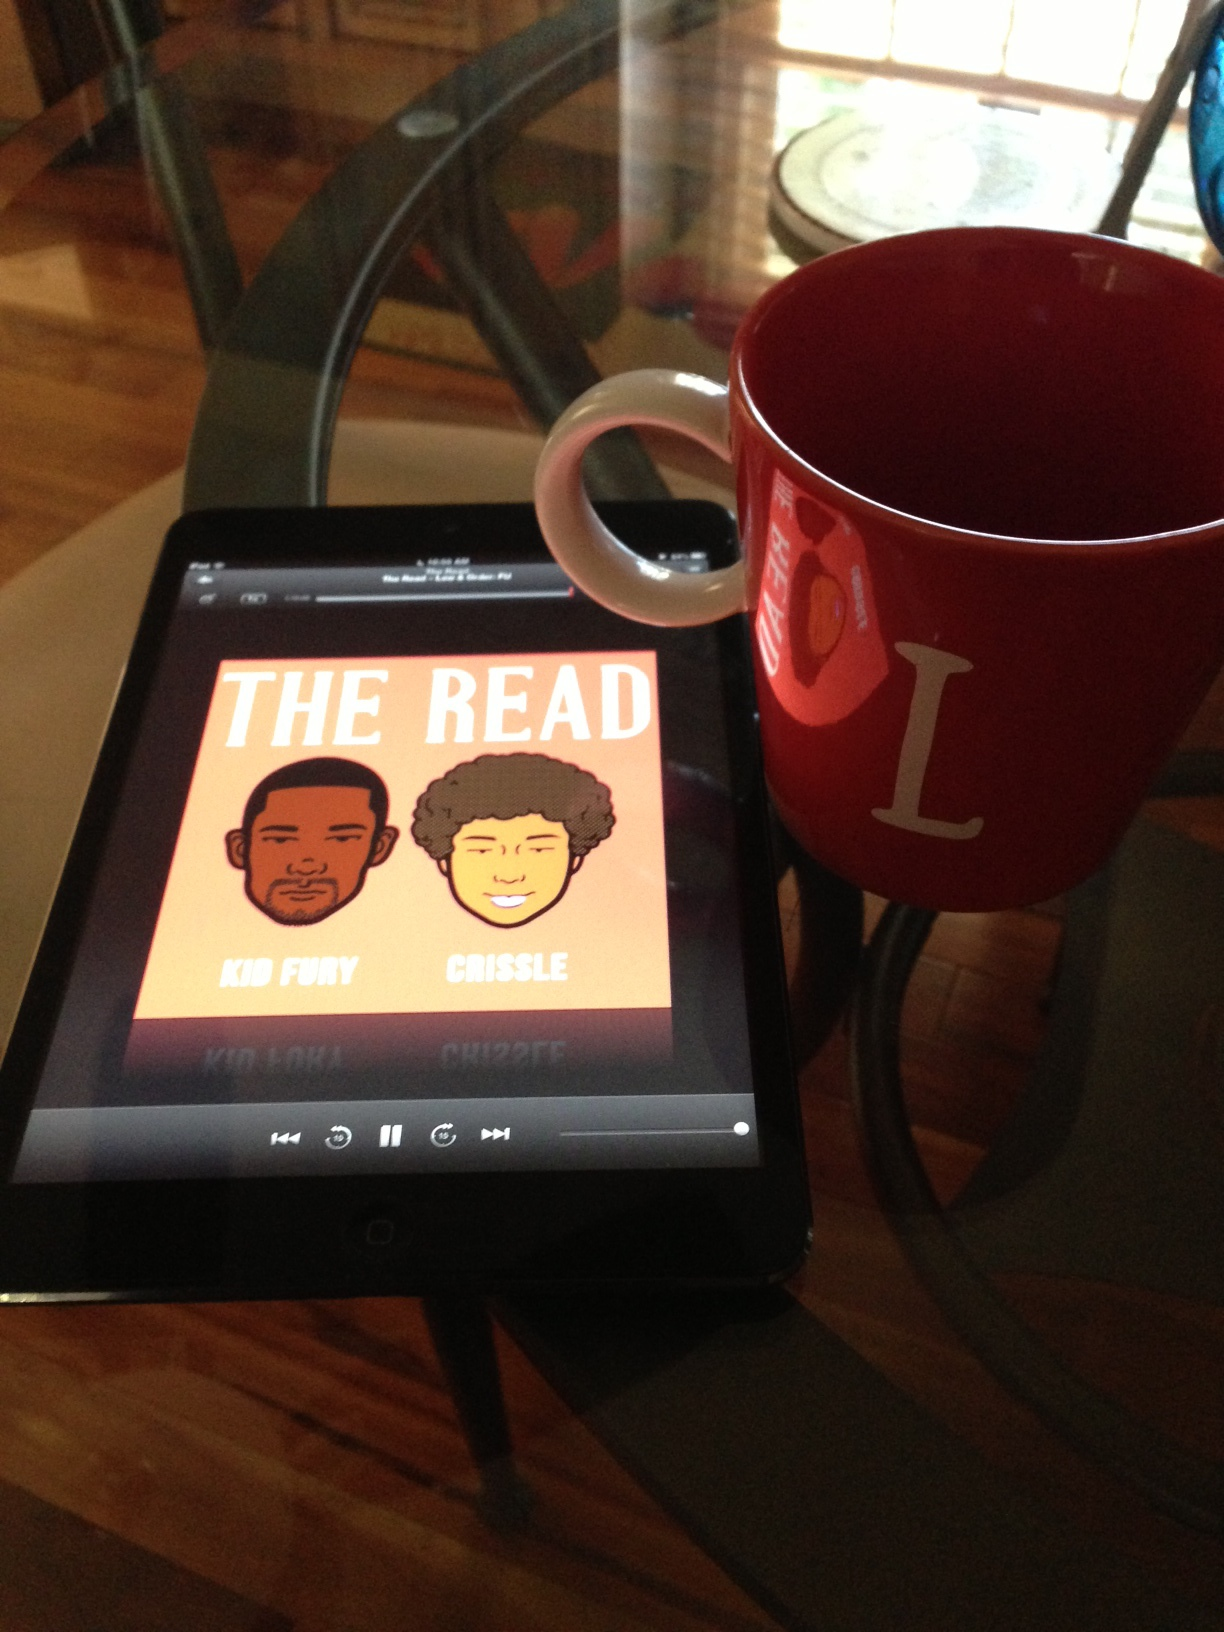 I listen to The Read while I sip my tea :)   Leslie J. Baltimore, Maryland, USA